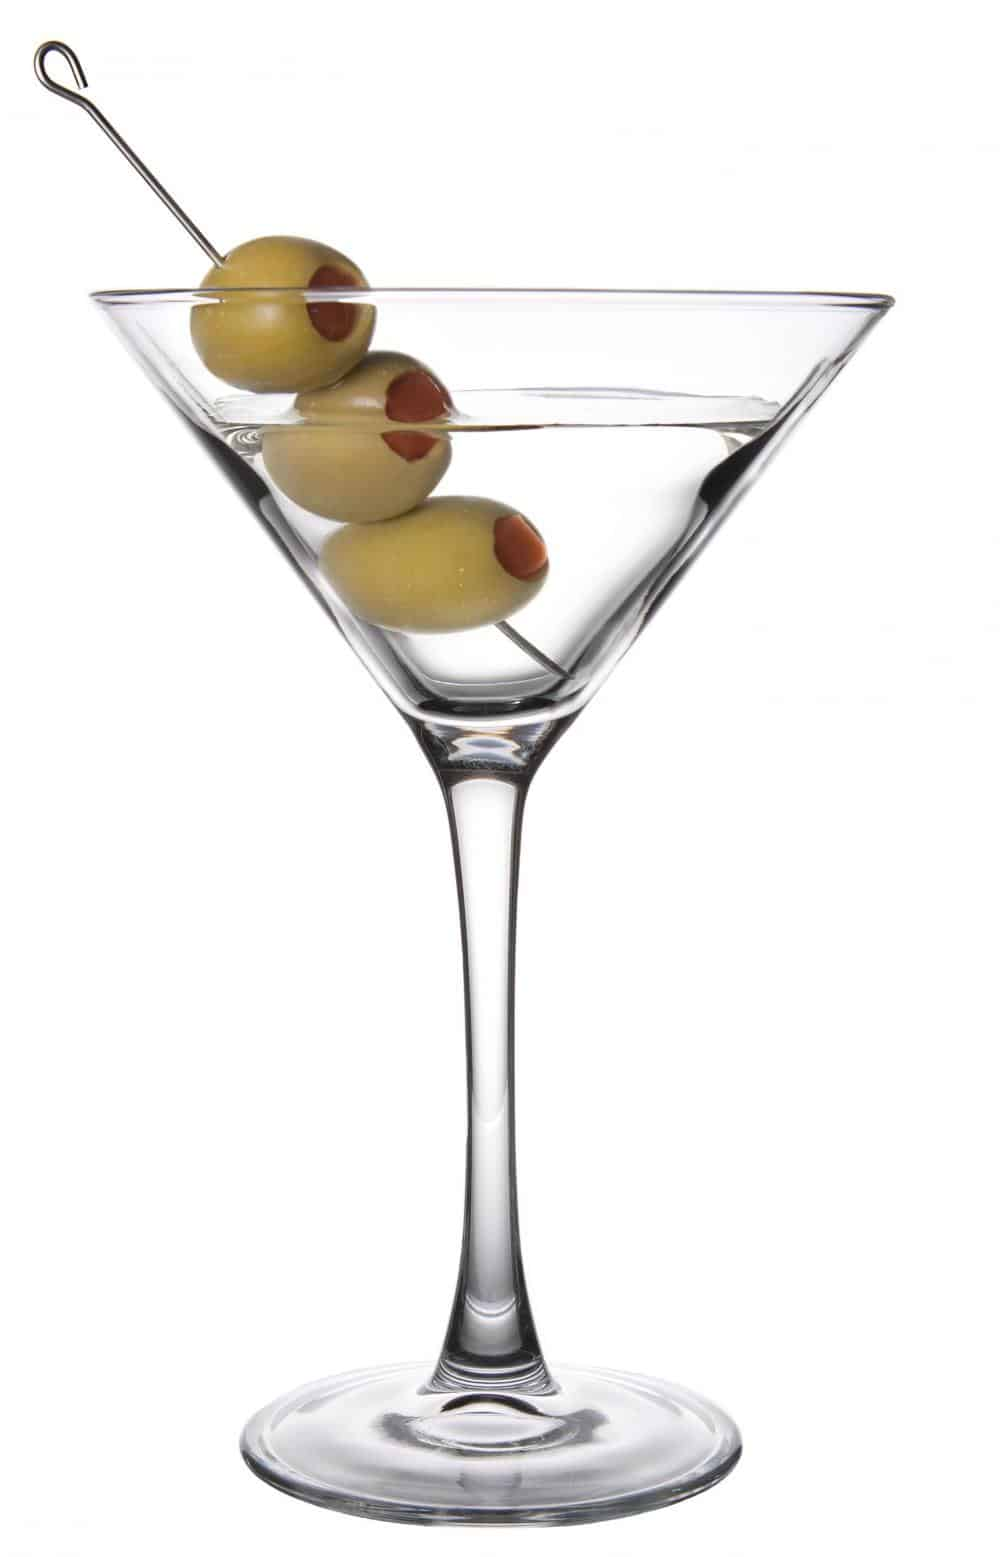 Ultimate way to have a martini is dry, stirred down, with a dry vermouth, lemon twist, touch of orange bitter for depth. A shaken martini is called a Vesper (James Bond Martini), it's a diluted version of a martini due to the shake, typically vodka, gin & Lillet.